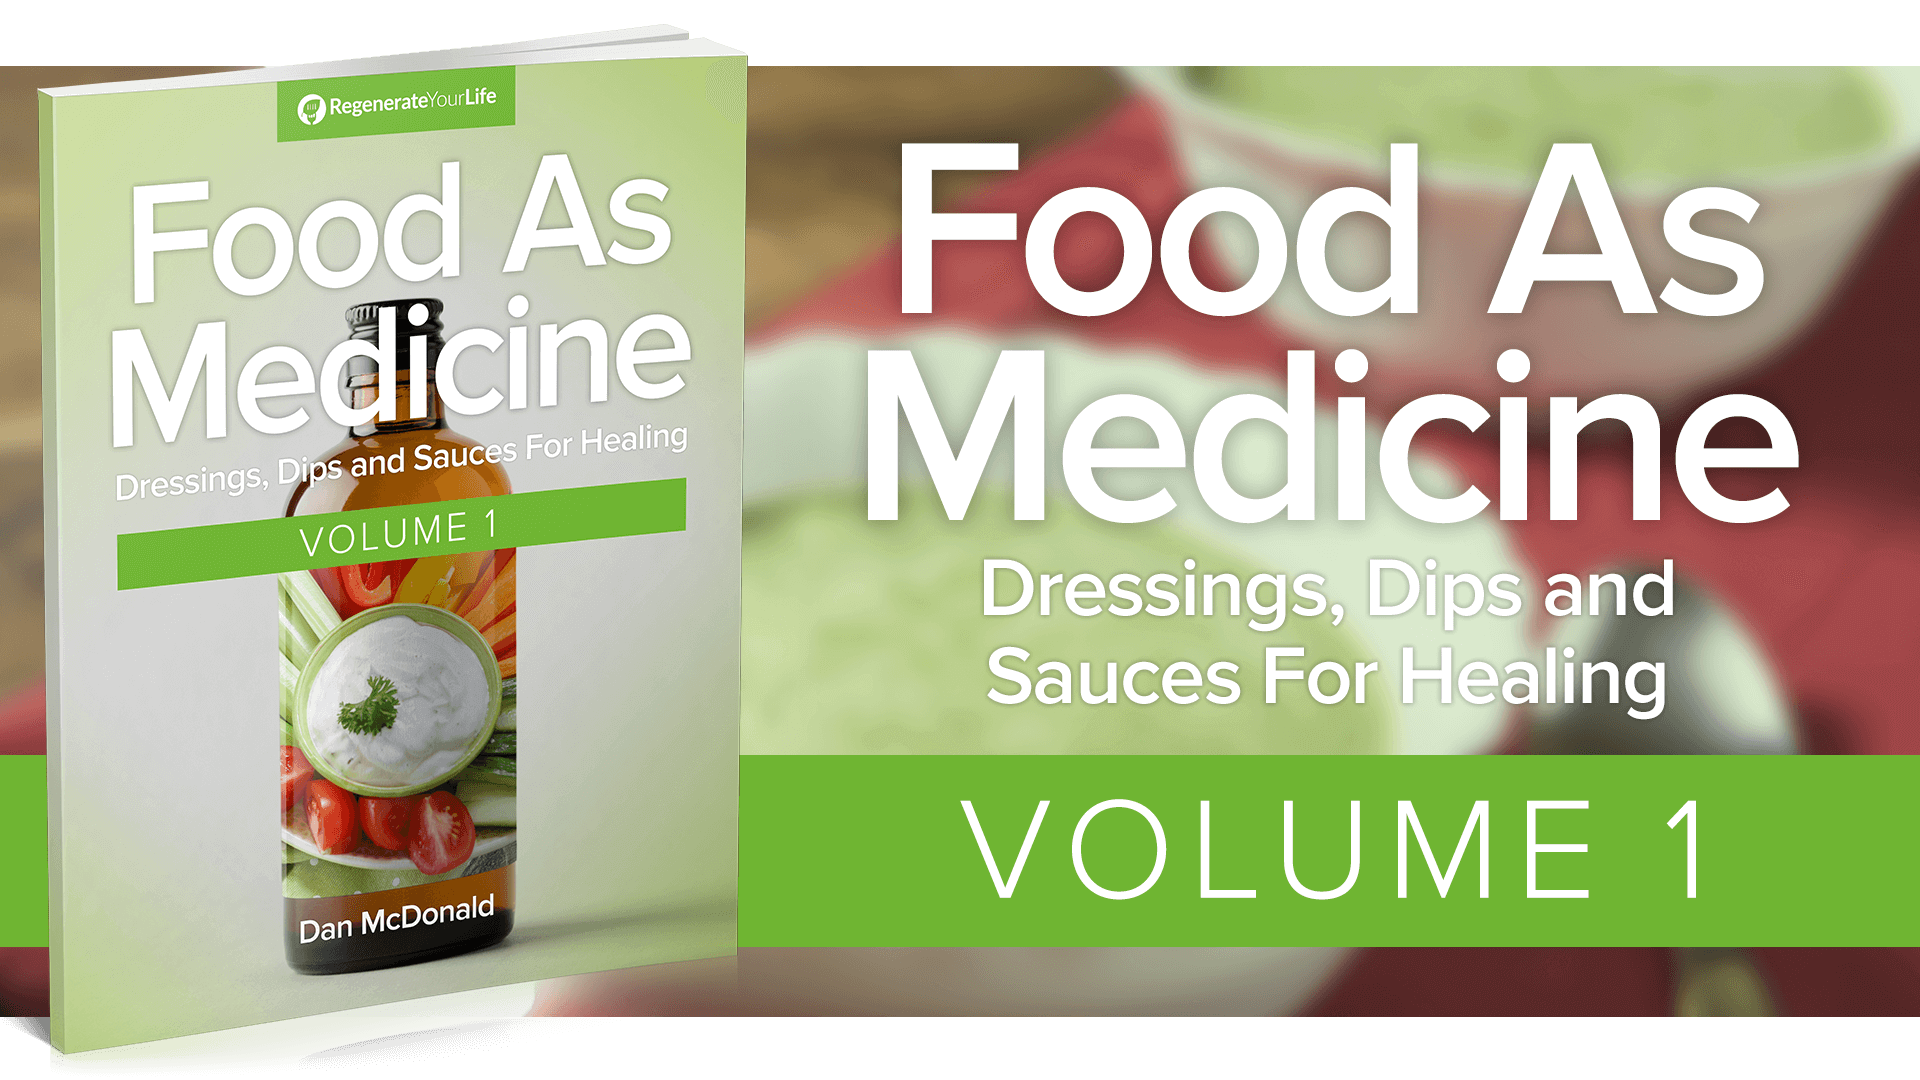 food-as-medicine-vol-1-graphic